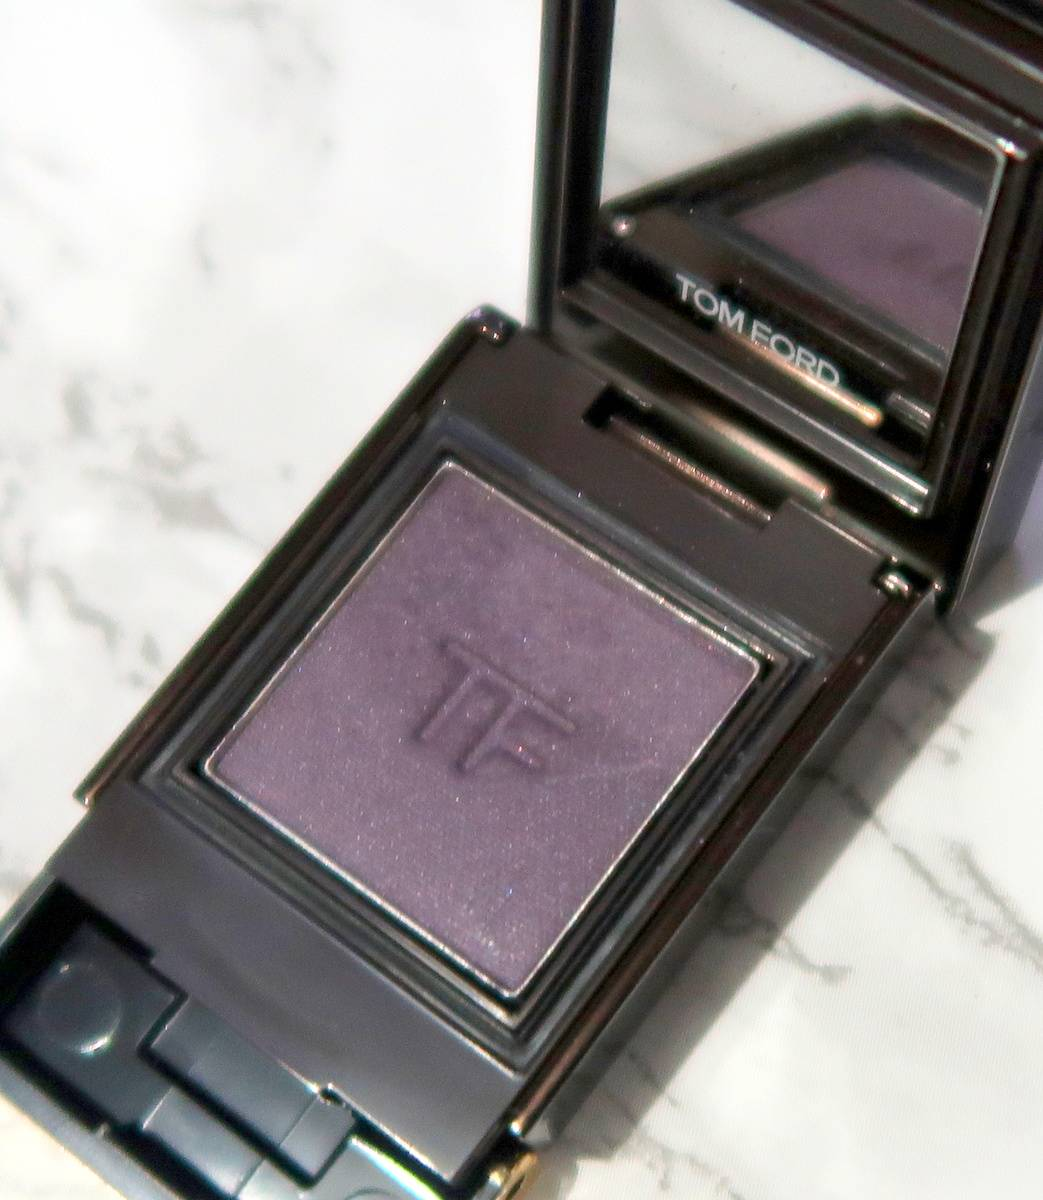 Tom Ford High Rise Mono Eyeshadow